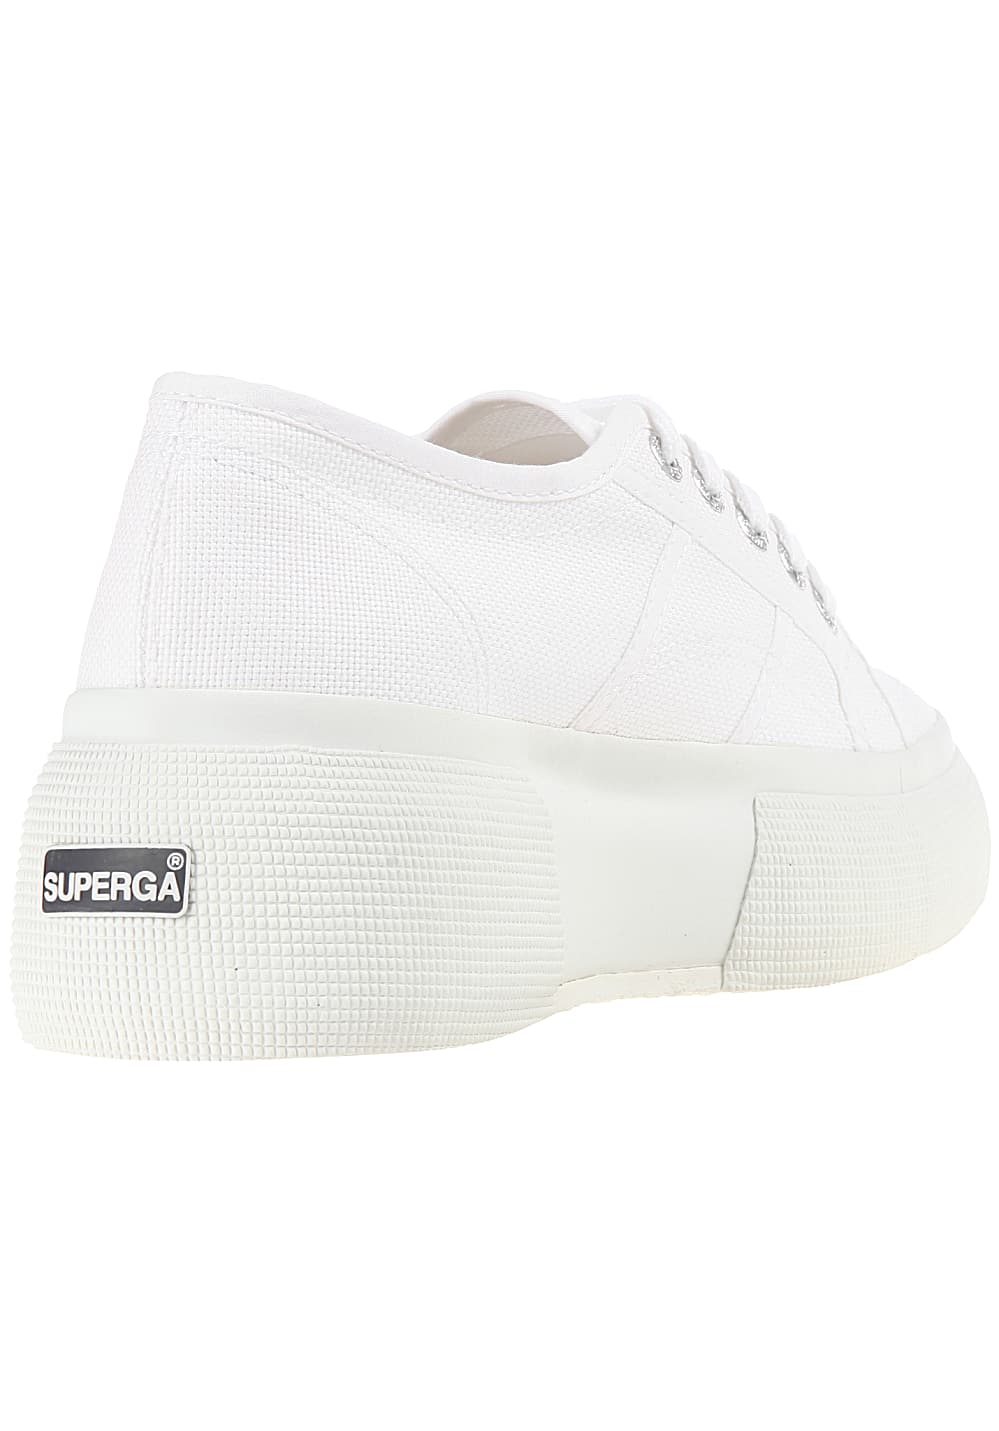 99ad217a492e Next. SUPERGA. 2287 Cotu - Sneakers for Women. €76.47. incl. VAT plus  shipping costs. White Black